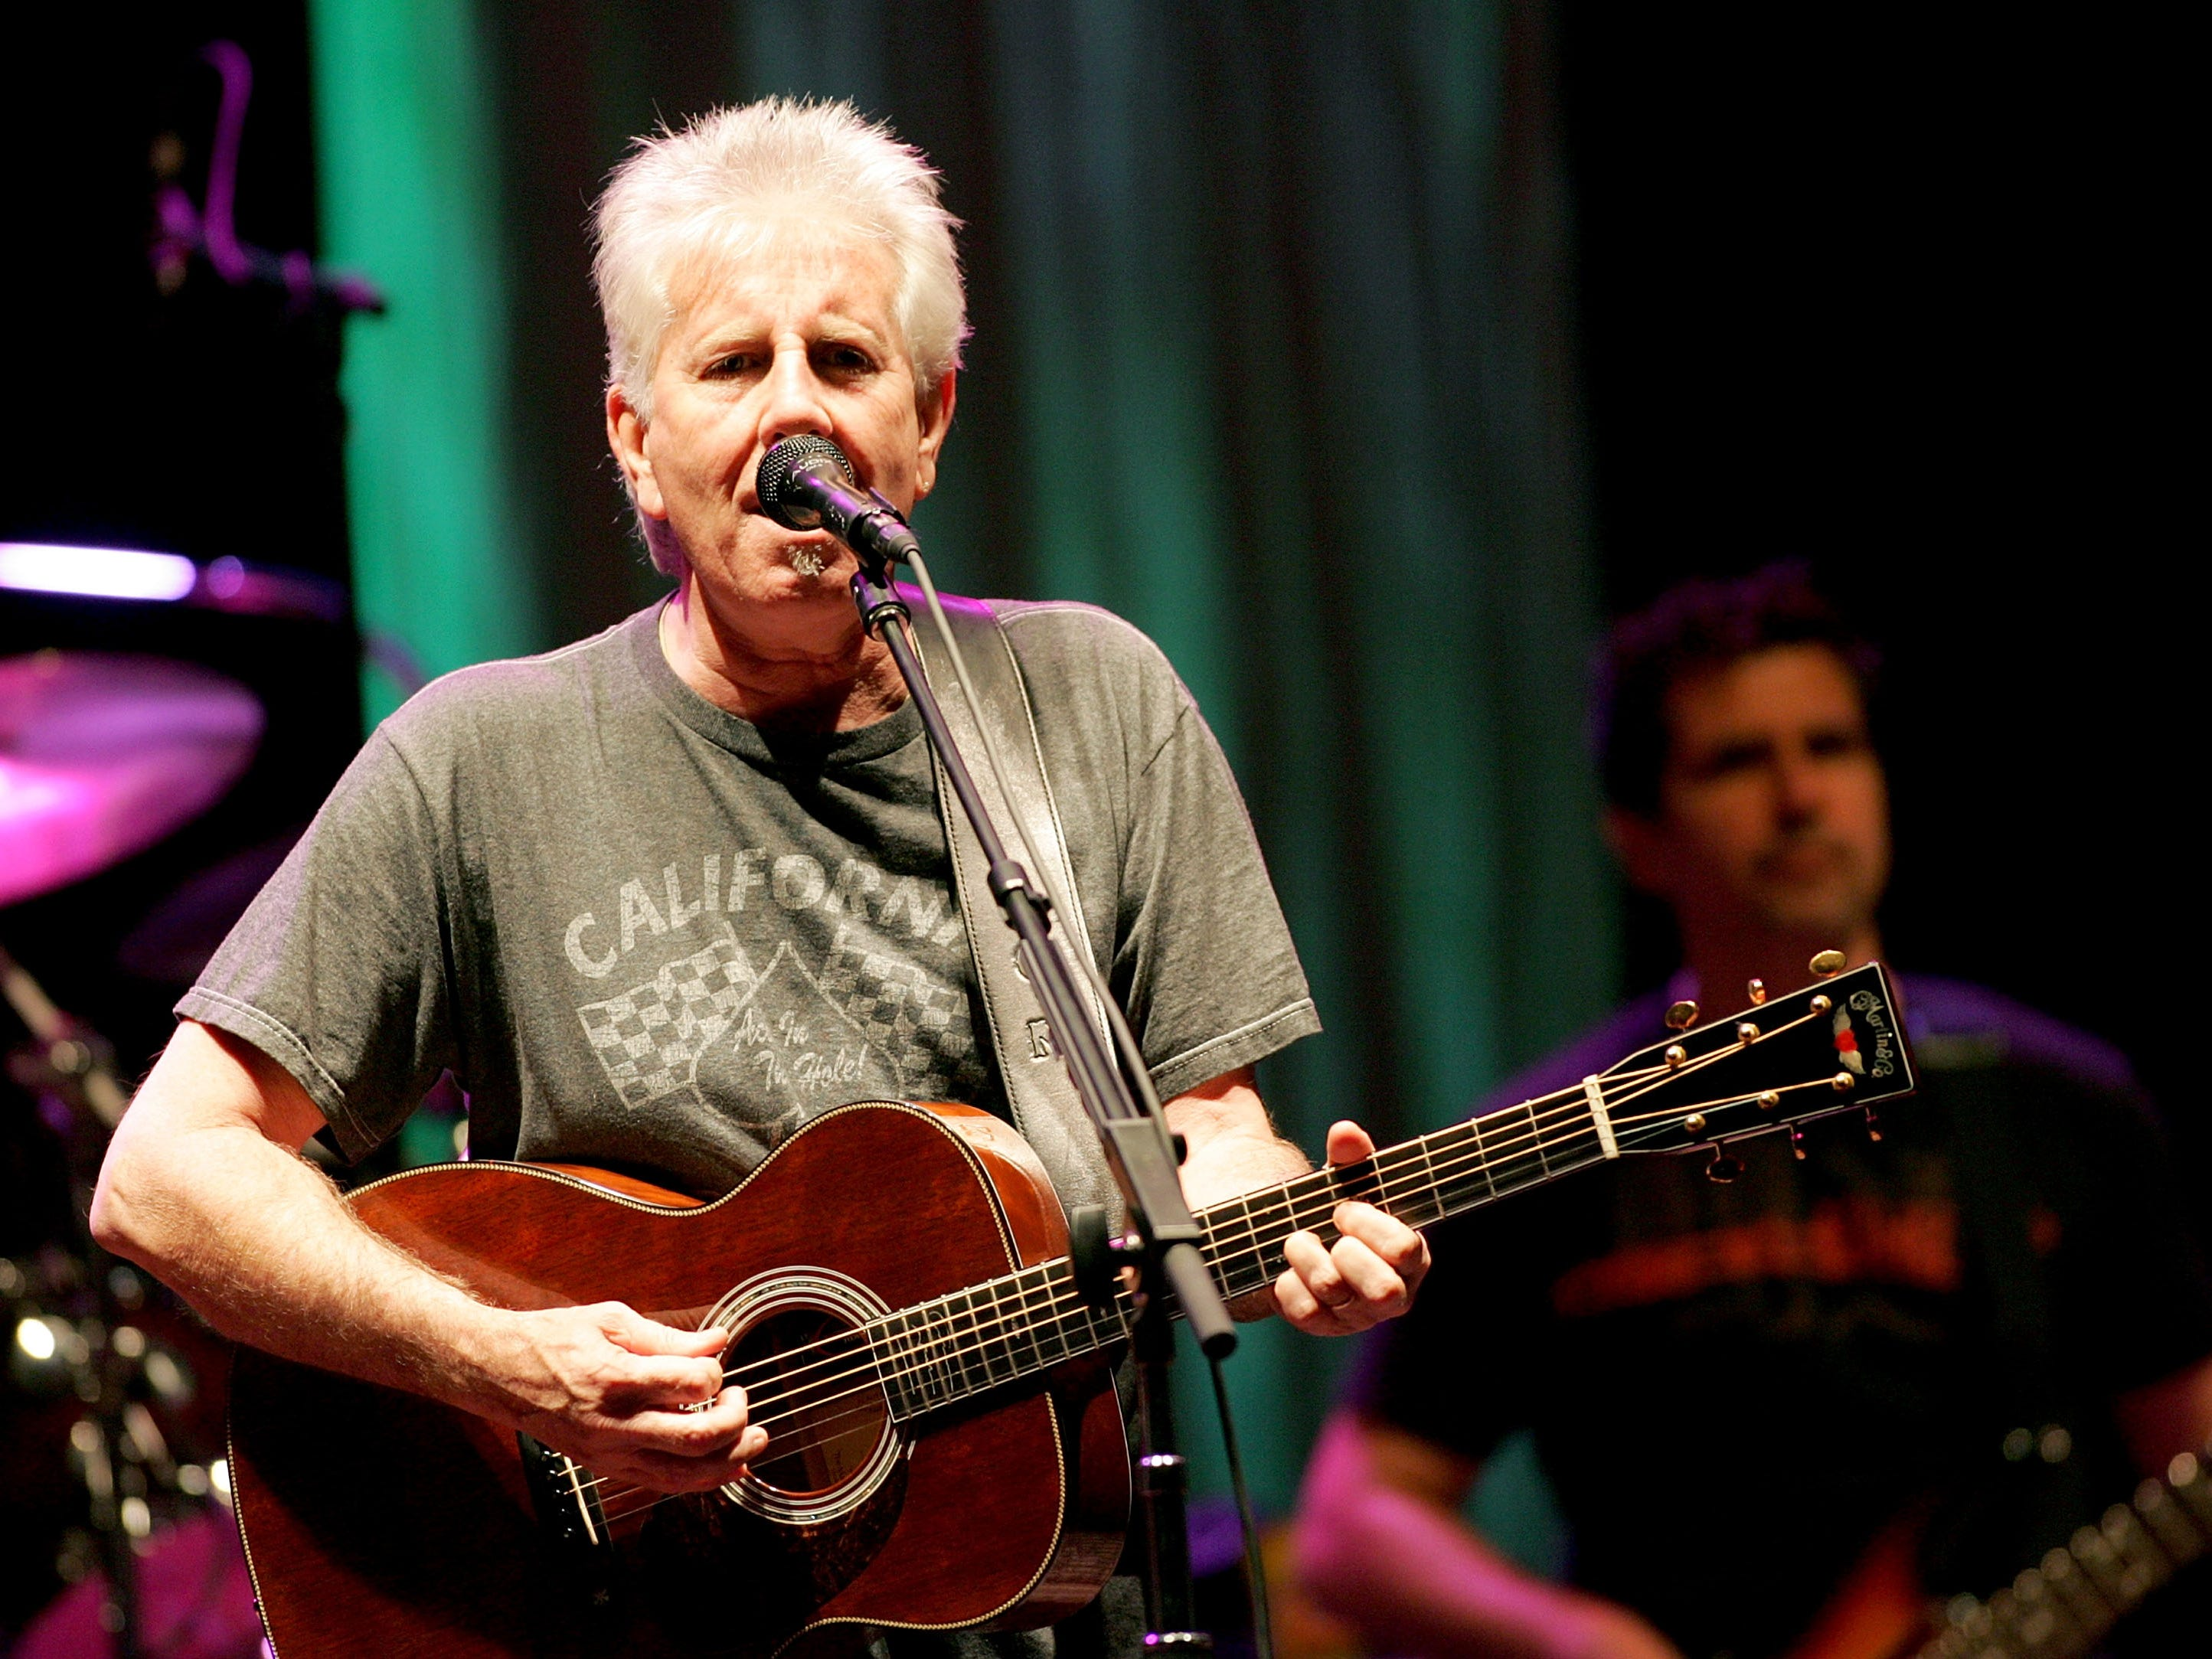 Graham Nash performs with Crosby Stills and Nash at the Beacon Theater August 1, 2005 in New York City.